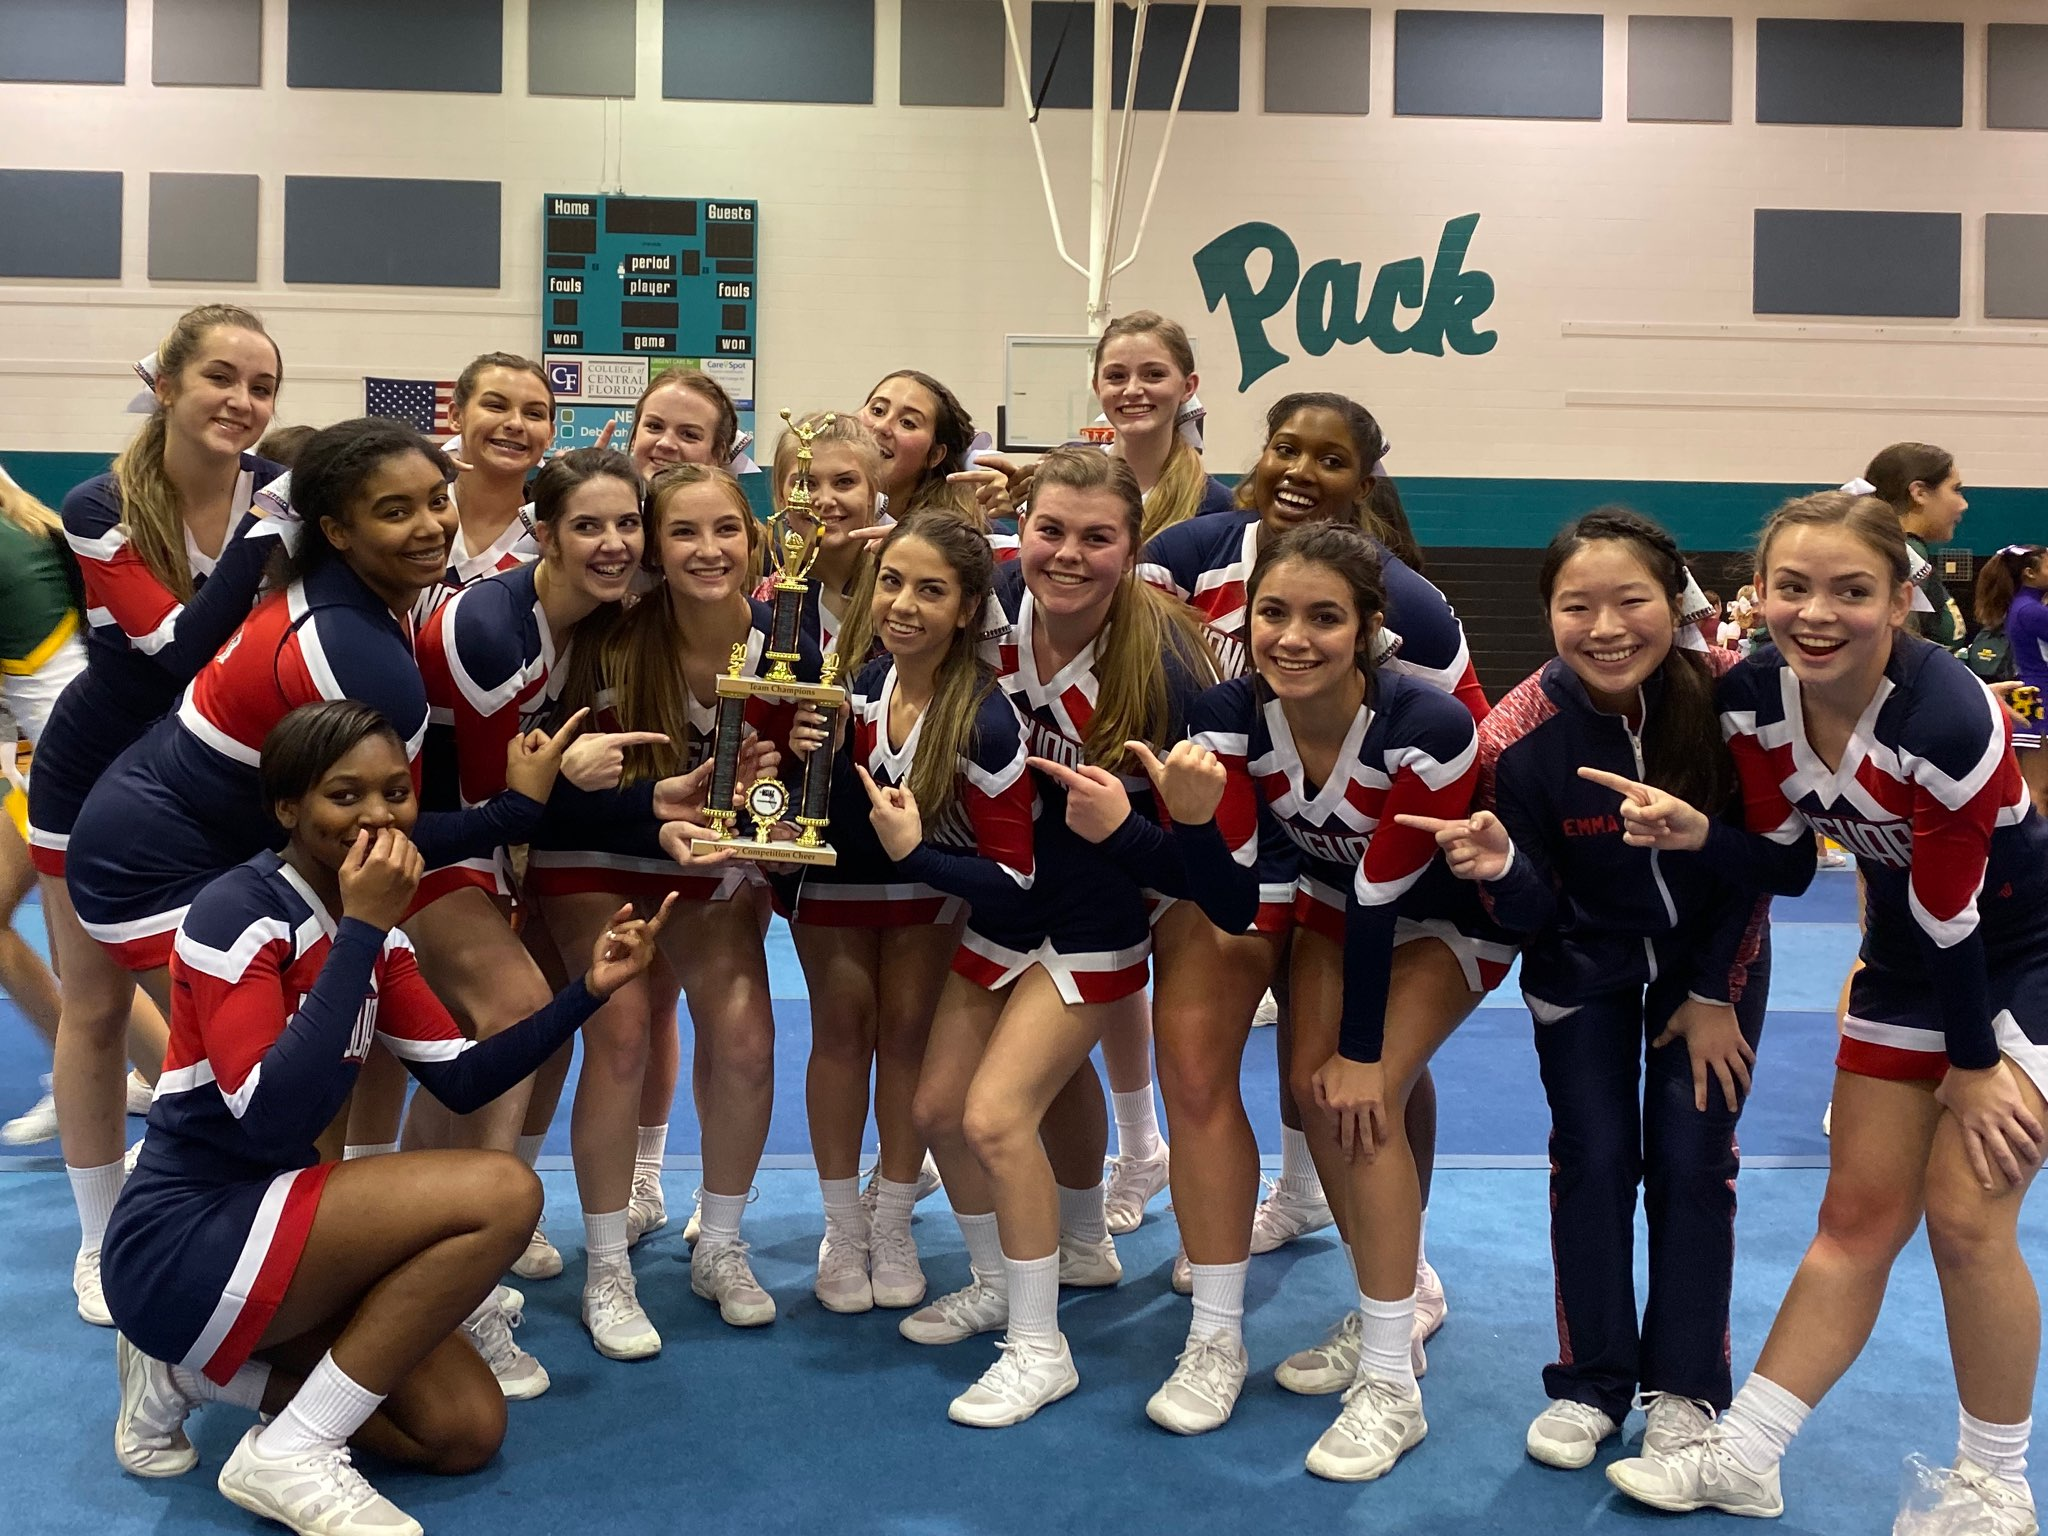 2019-20 Competitive Cheer Champions